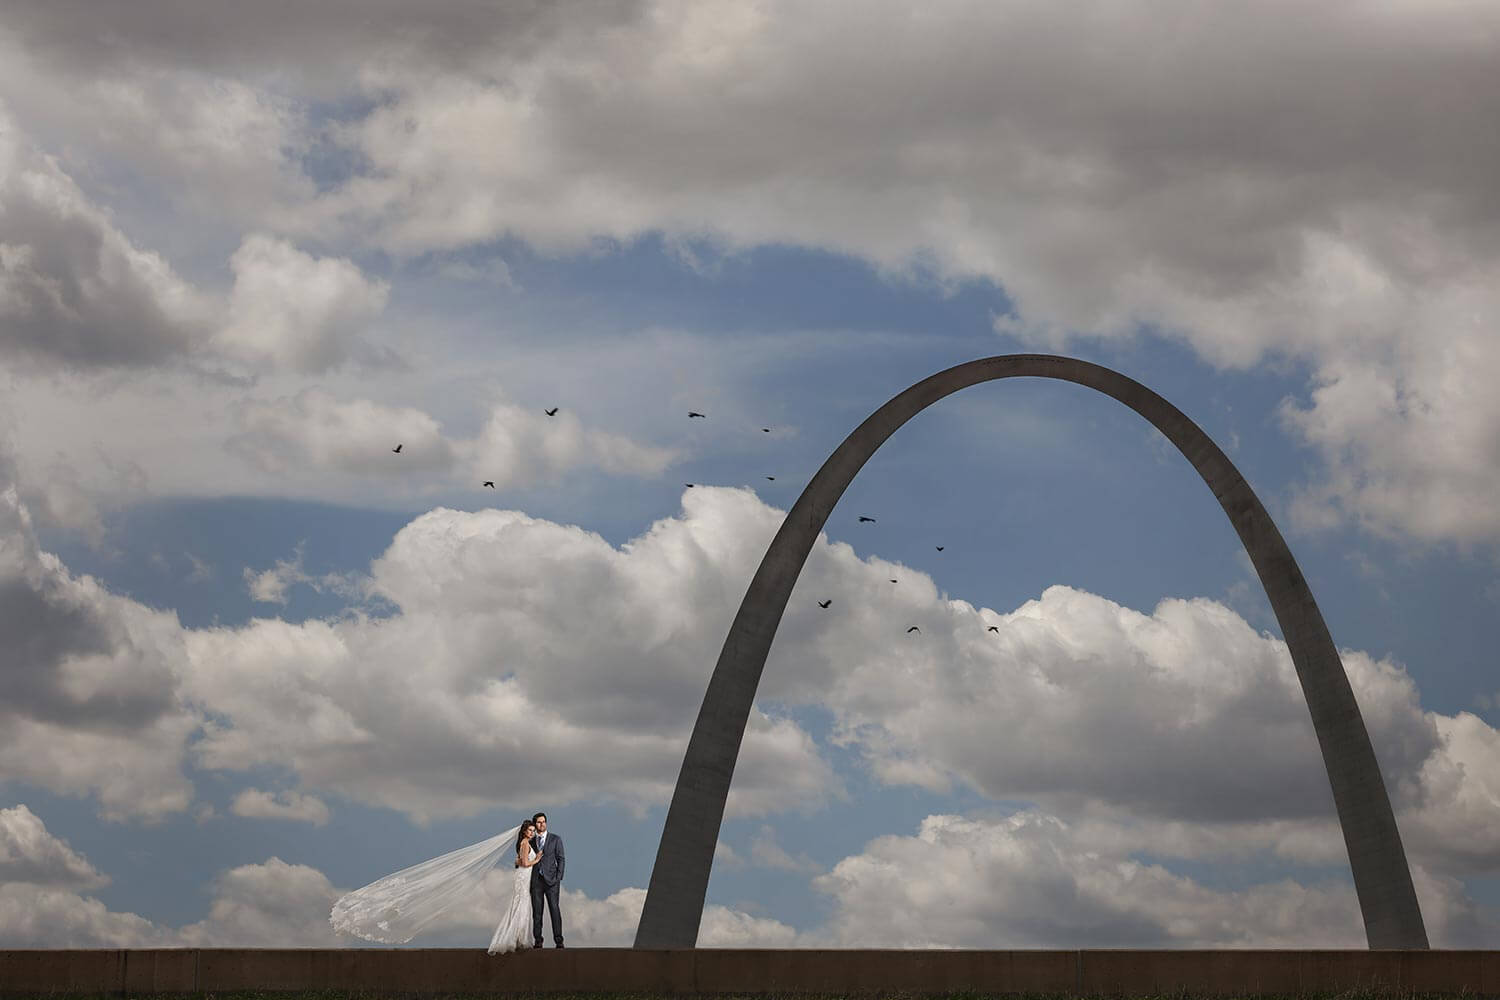 Scene 4: Bride & groom in front of the St. Louis Arch with the Canon R5 and Sal Cincotta